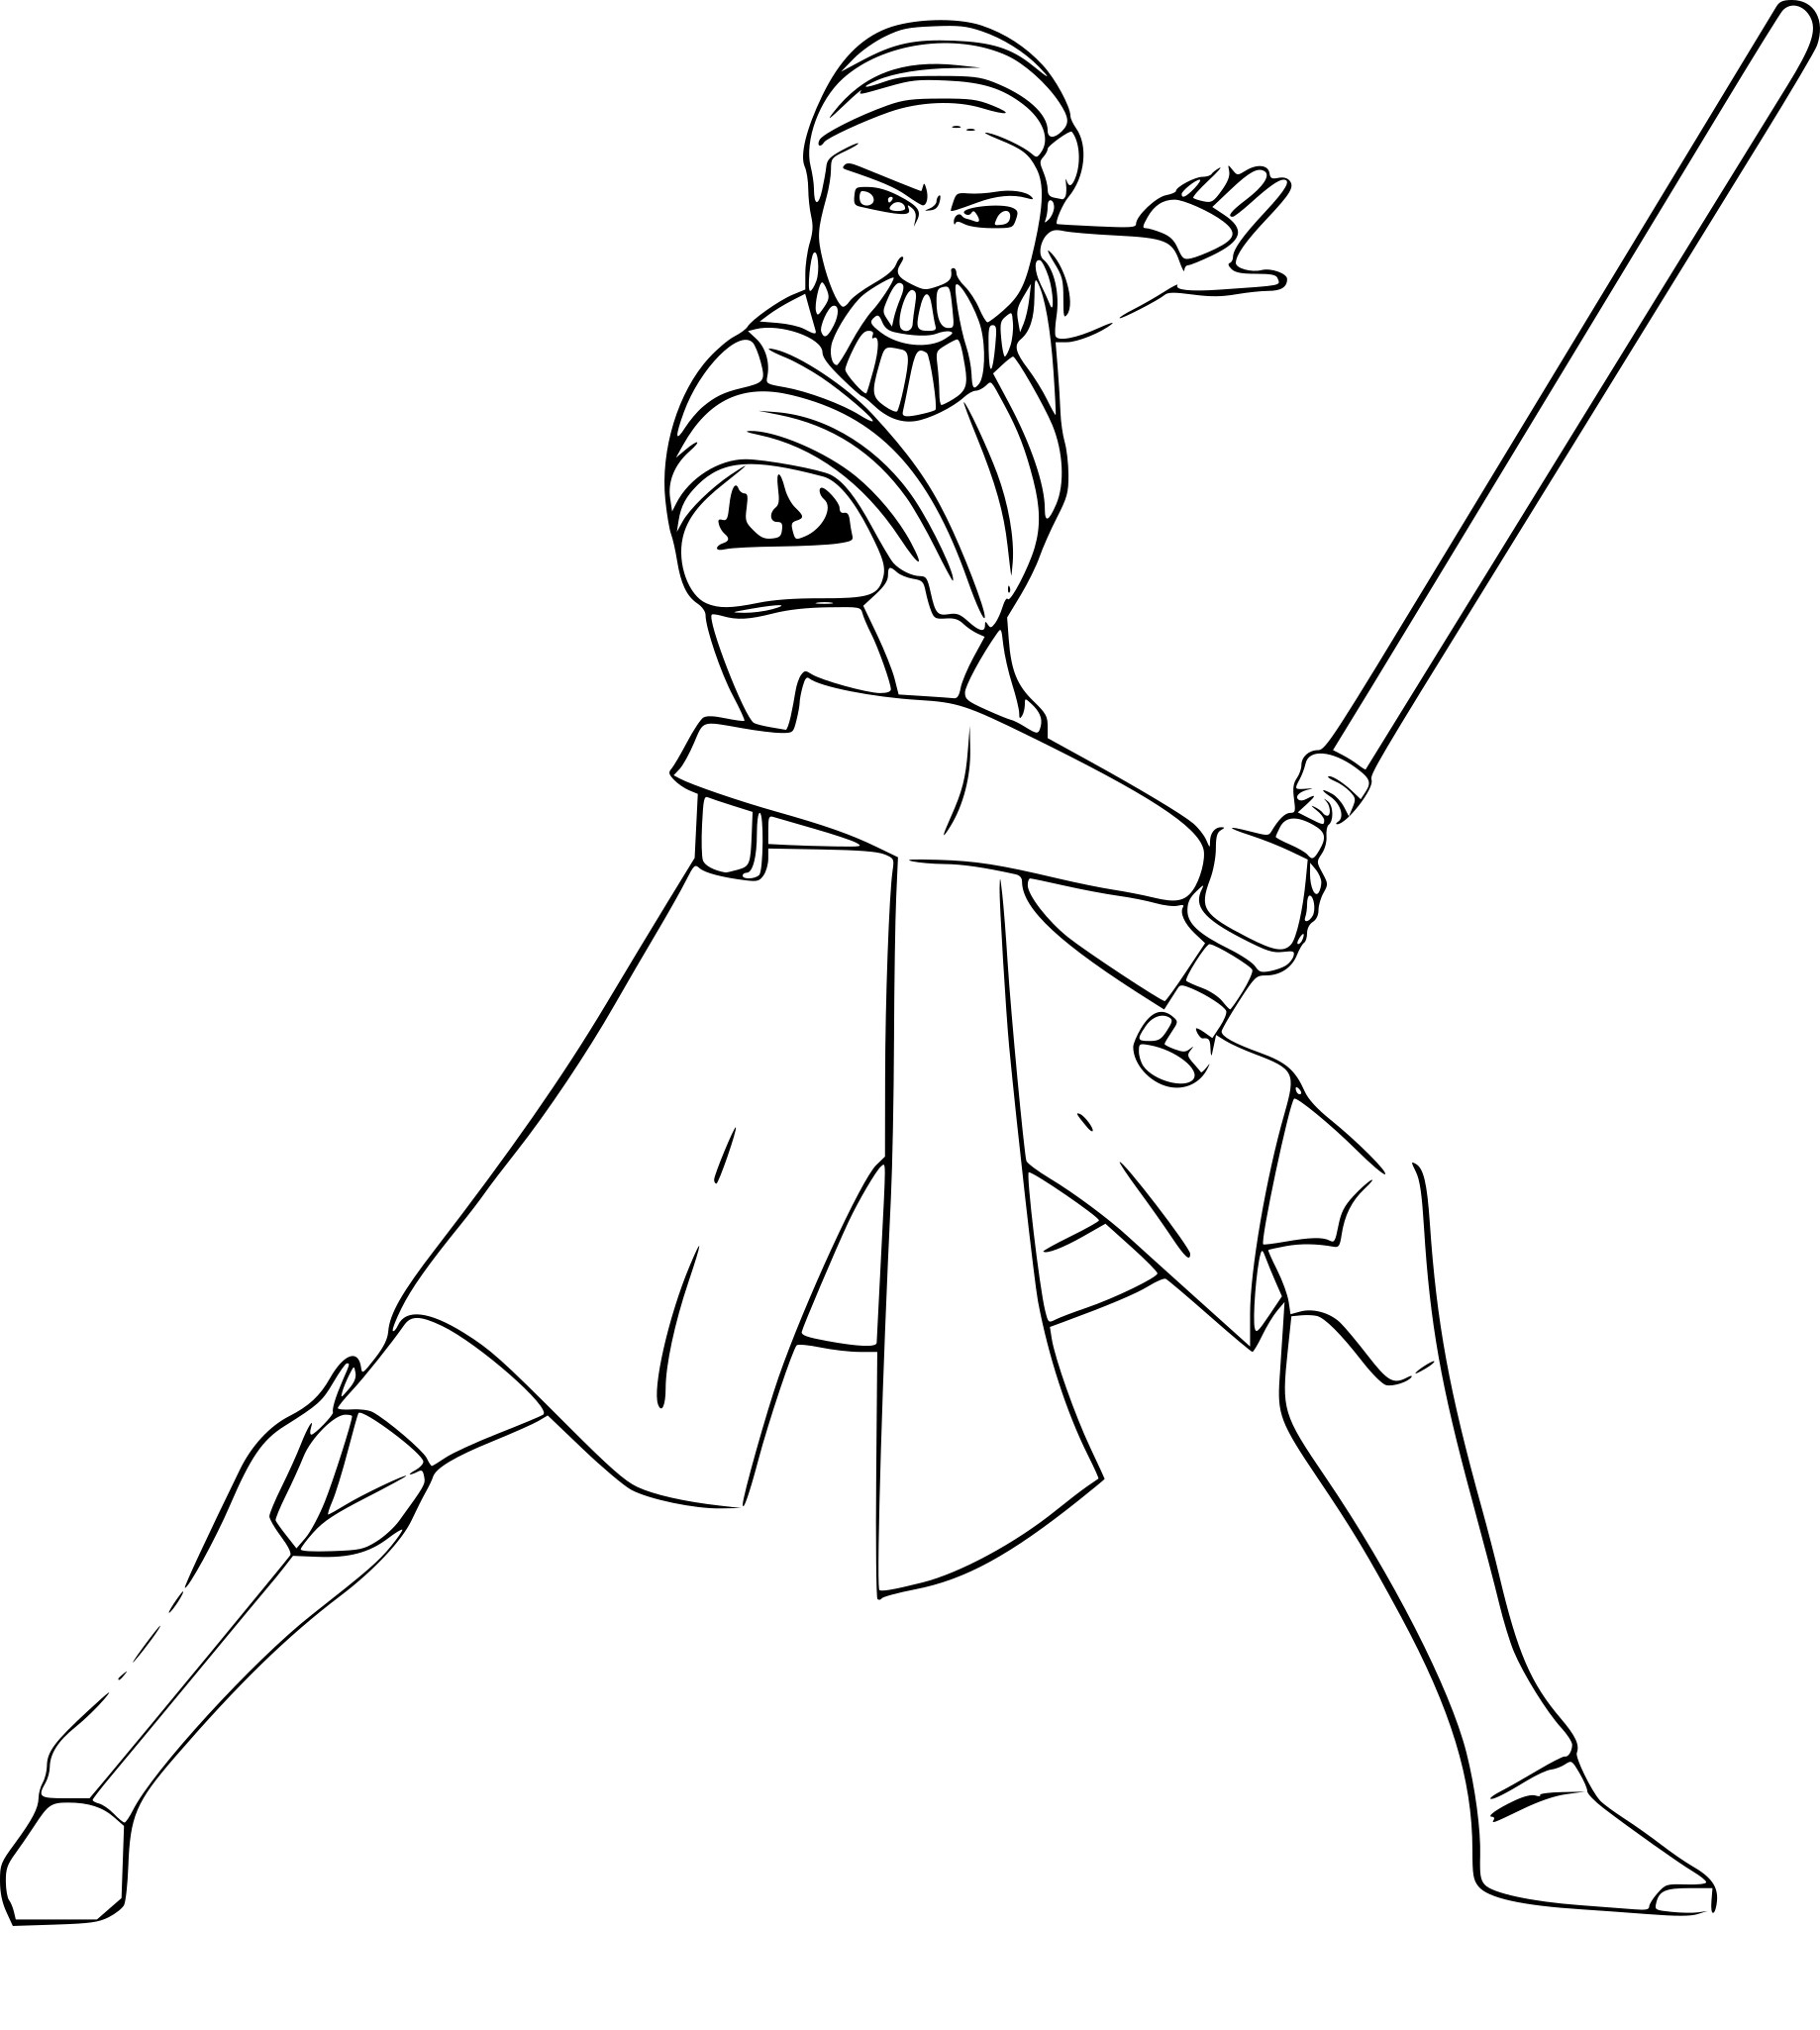 Coloriage Obi Wan Kenobi À Imprimer Sur Coloriages serapportantà Coloriage Star Wars